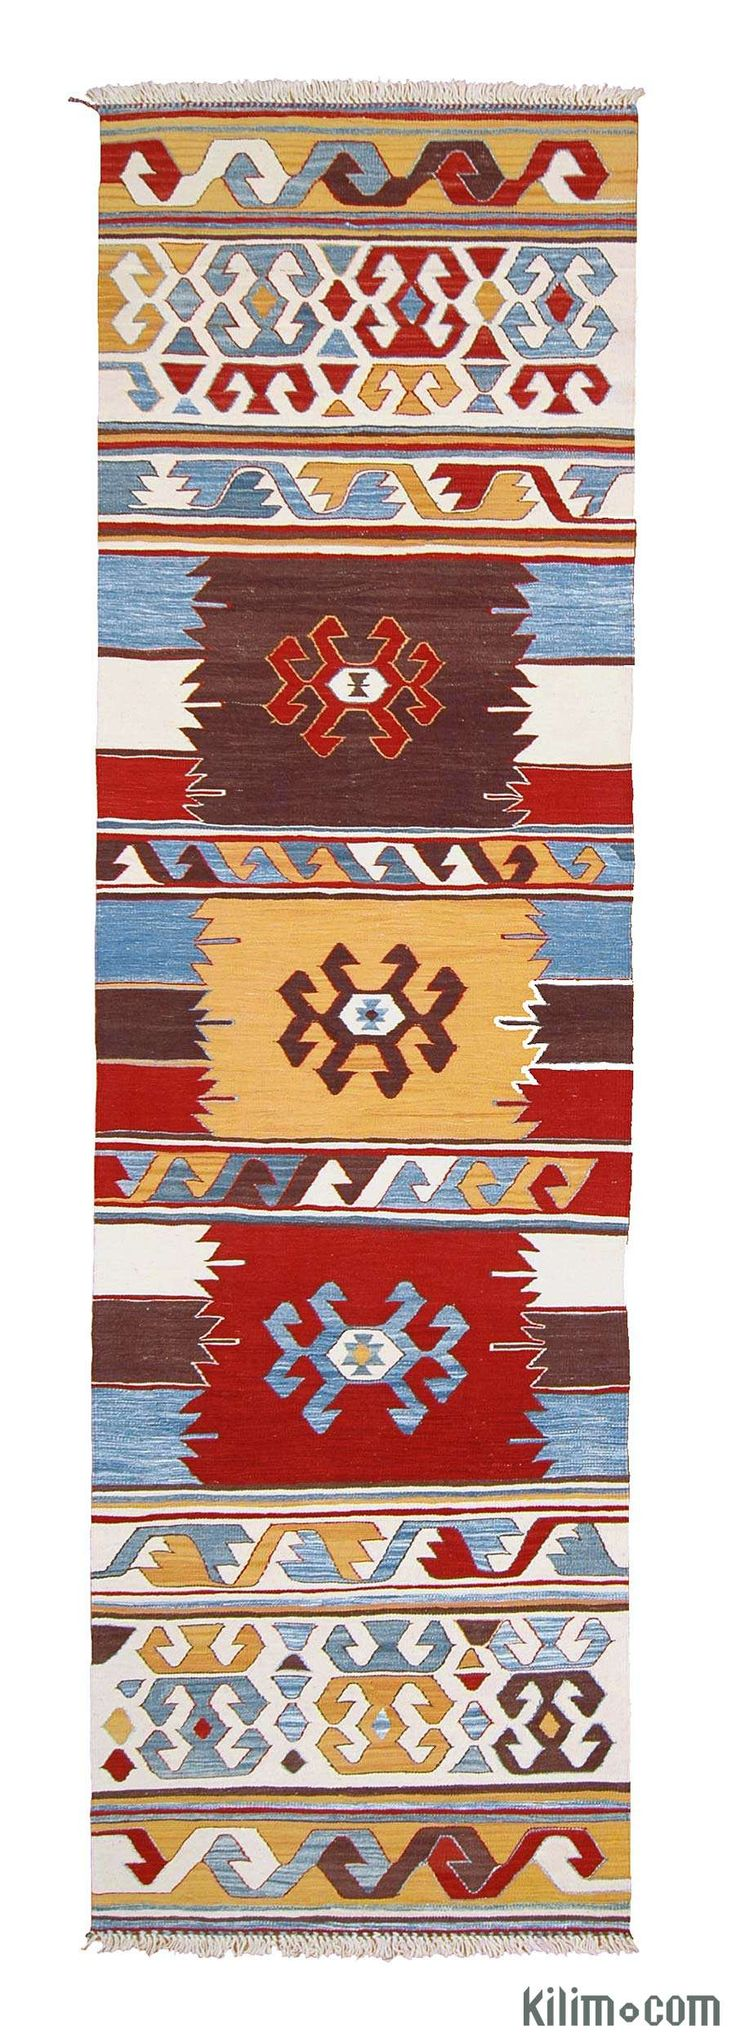 K0003860 New Turkish Kilim Runner Rug | Kilim Rugs, Overdyed Vintage Rugs, Hand-made Turkish Rugs, Patchwork Carpets by Kilim.com